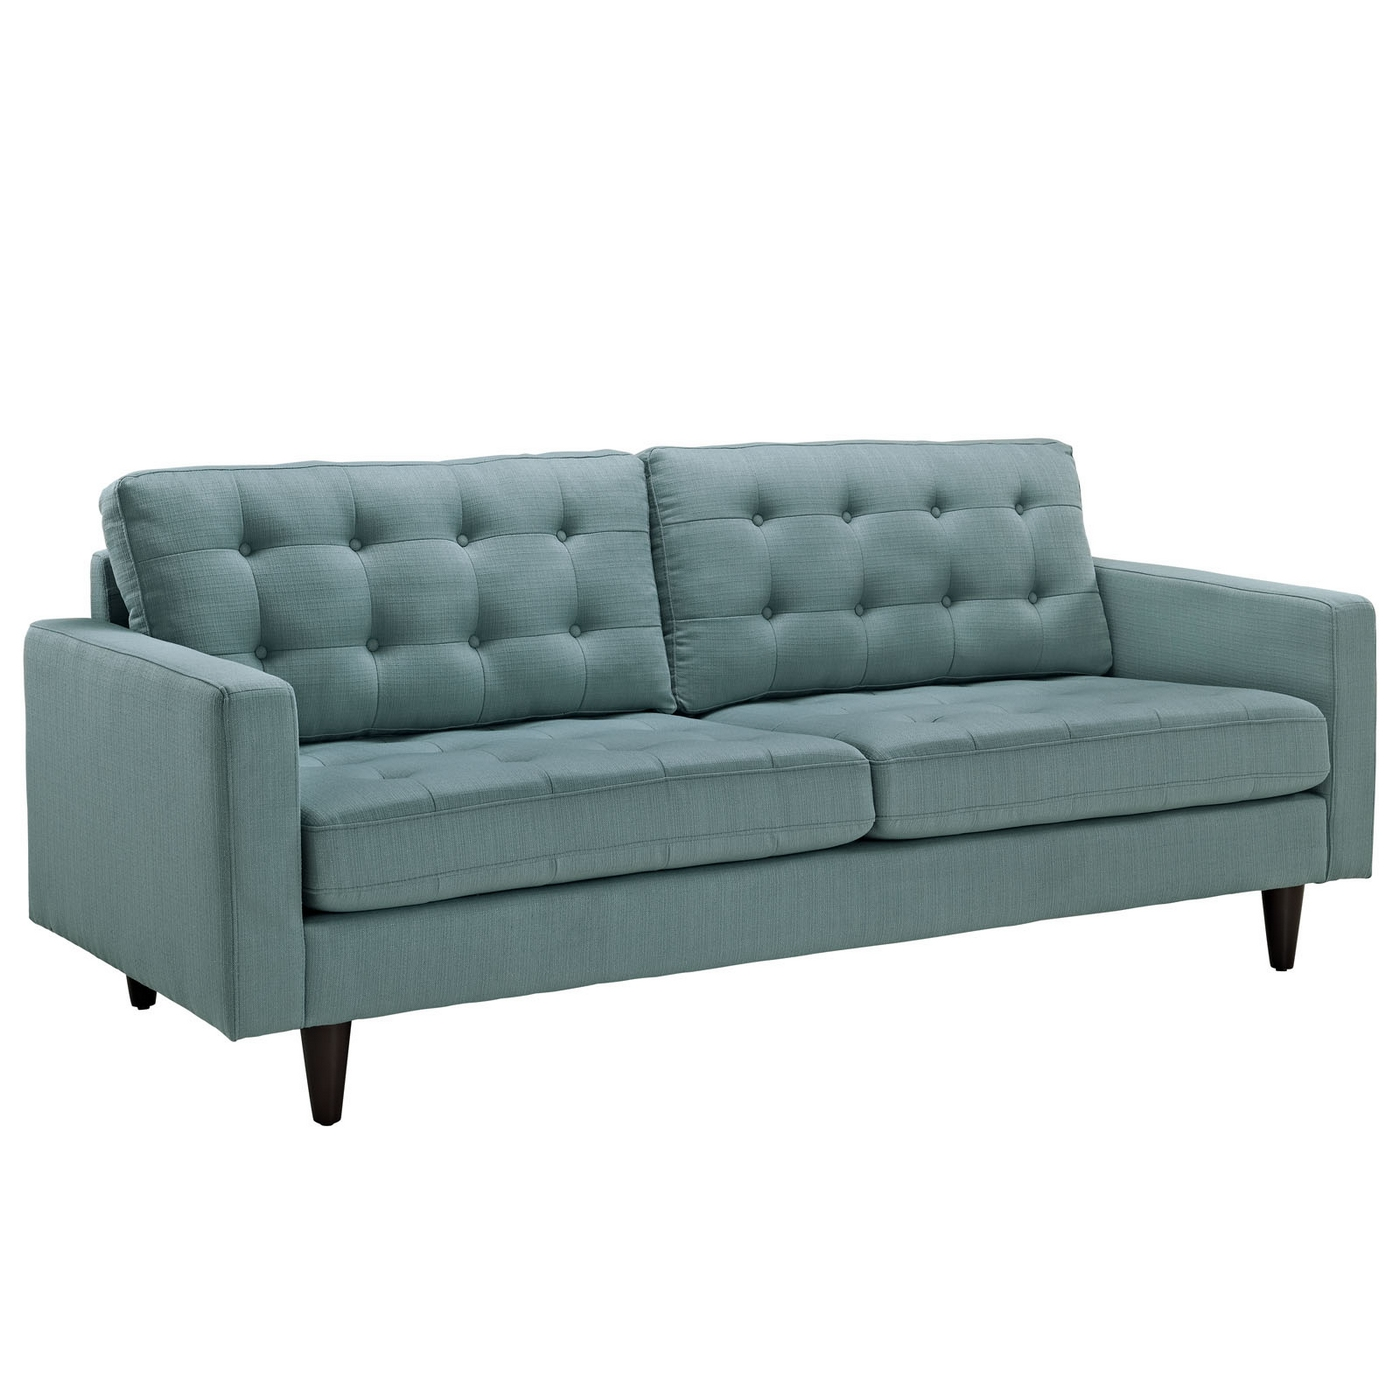 Empress contemporary button tufted upholstered sofa laguna for Modern contemporary sofa